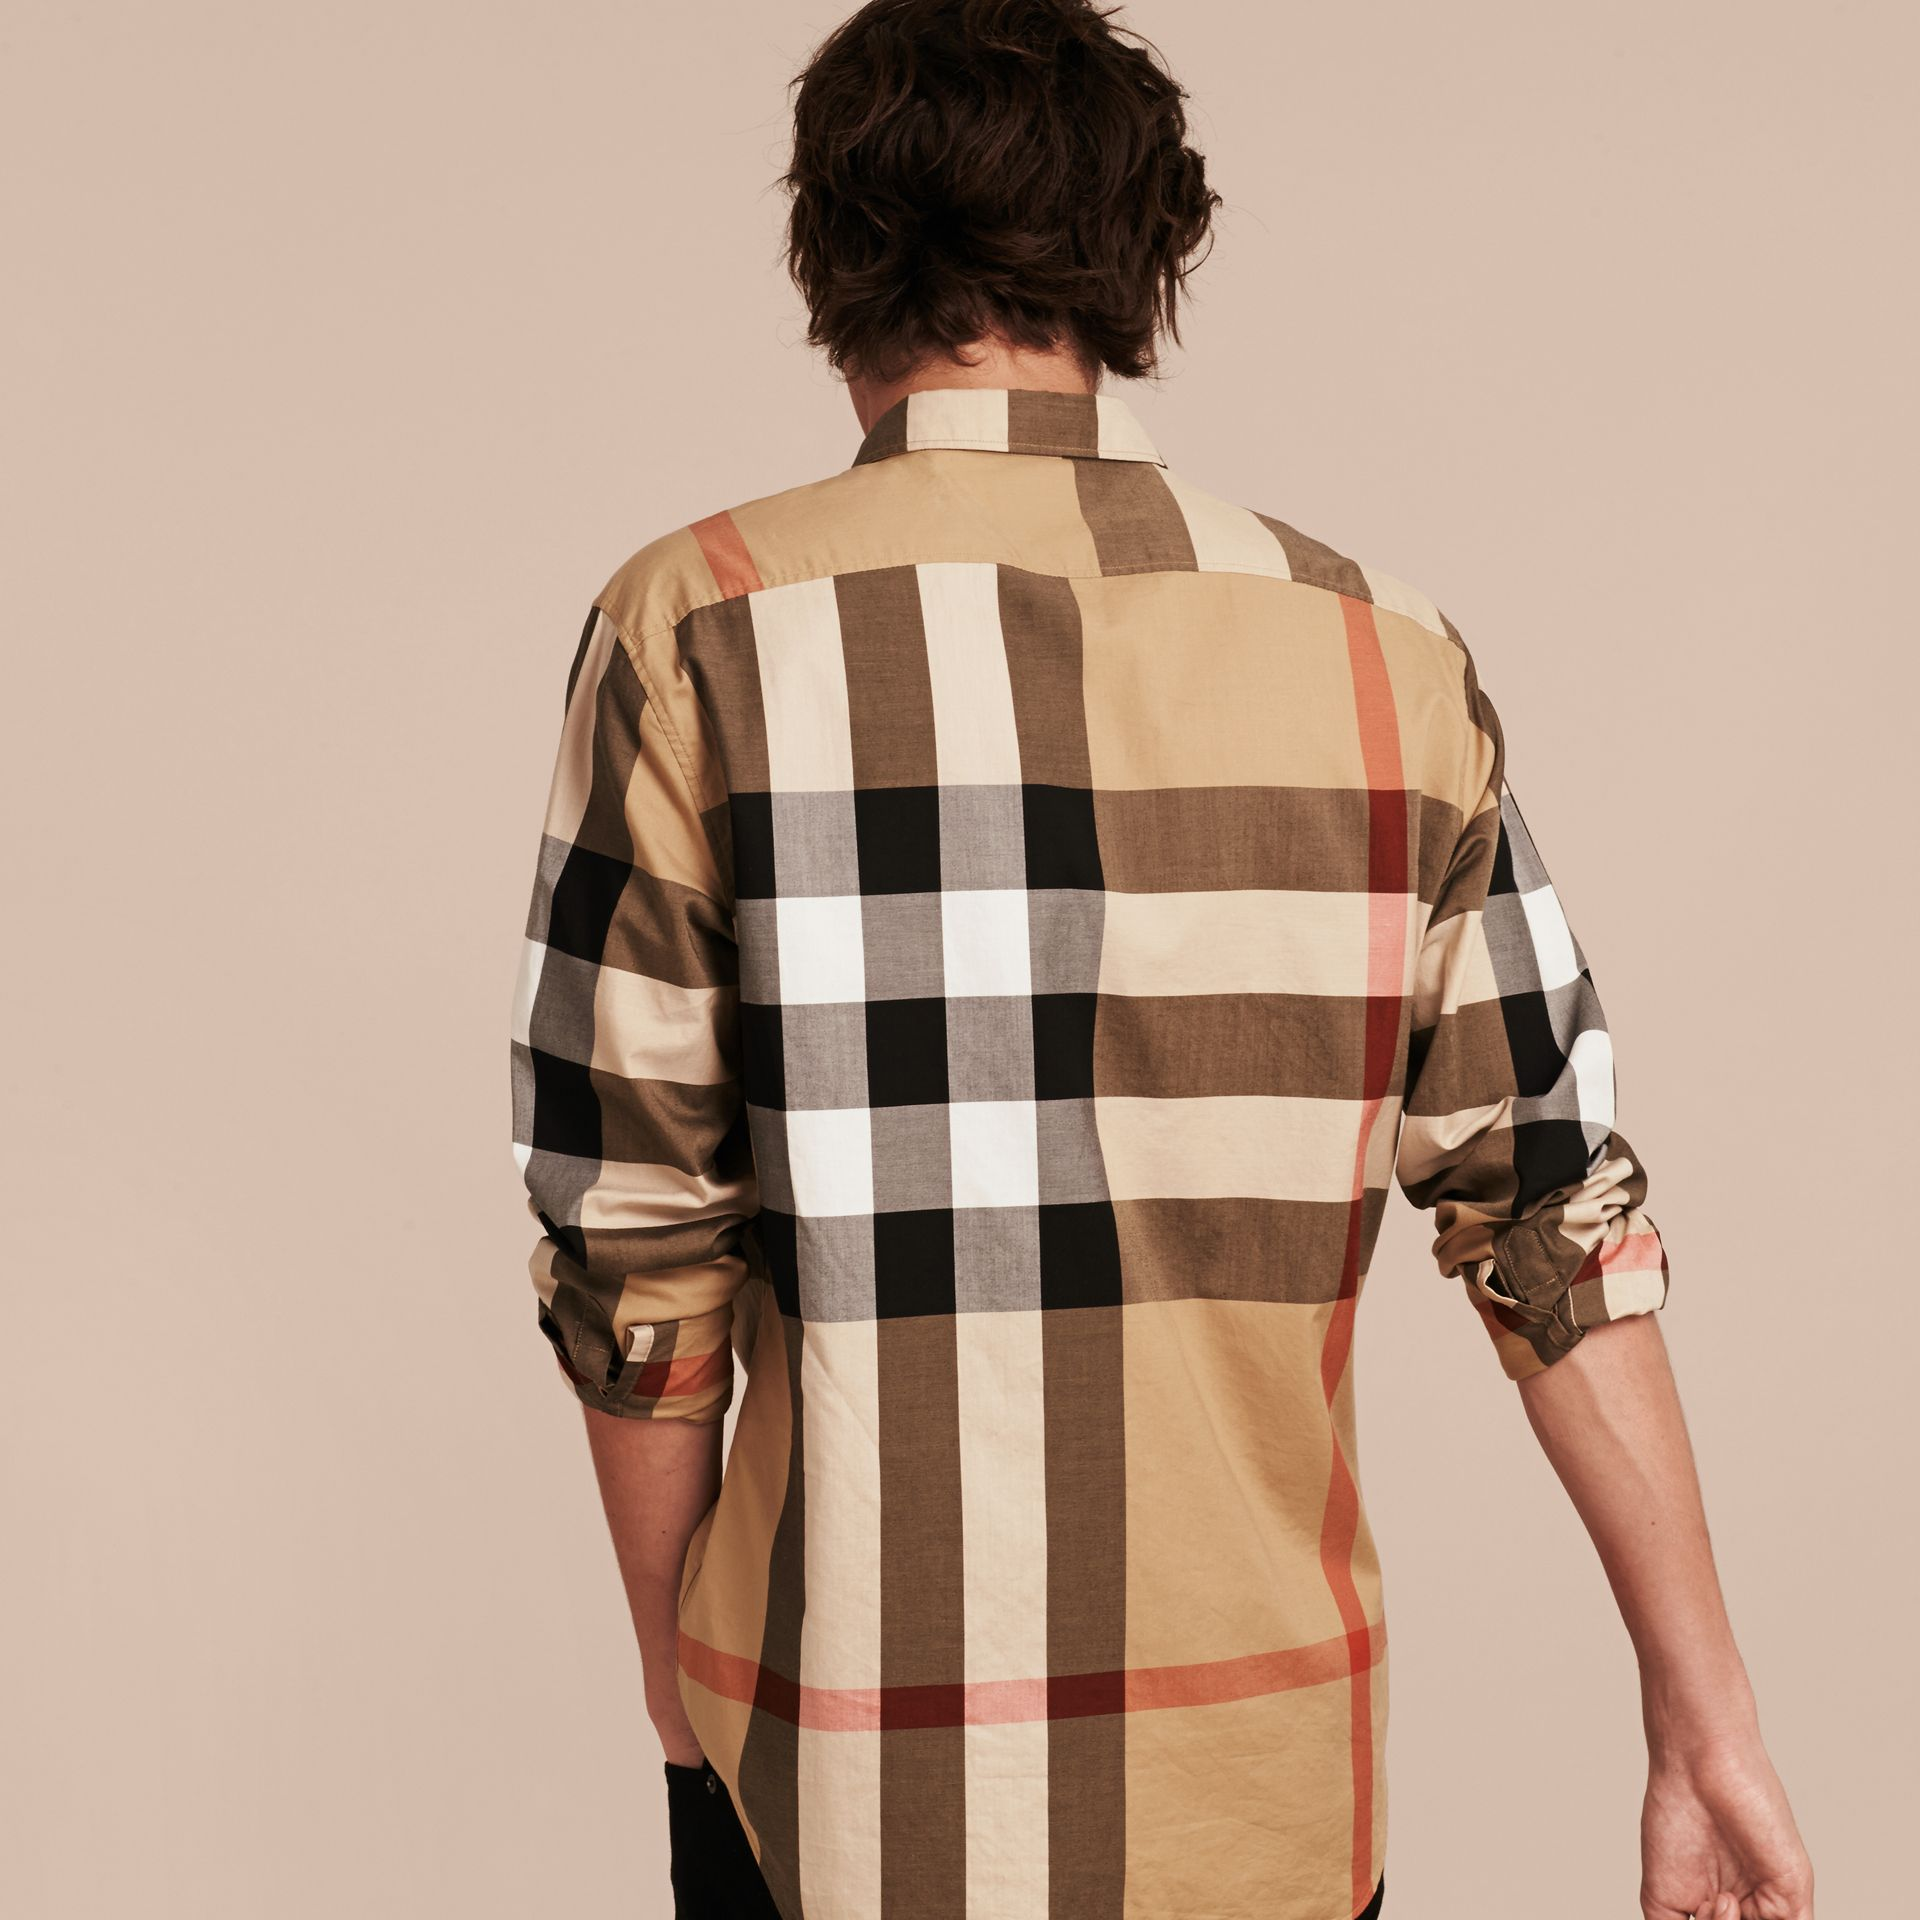 Camel Check Cotton Shirt Camel - gallery image 3